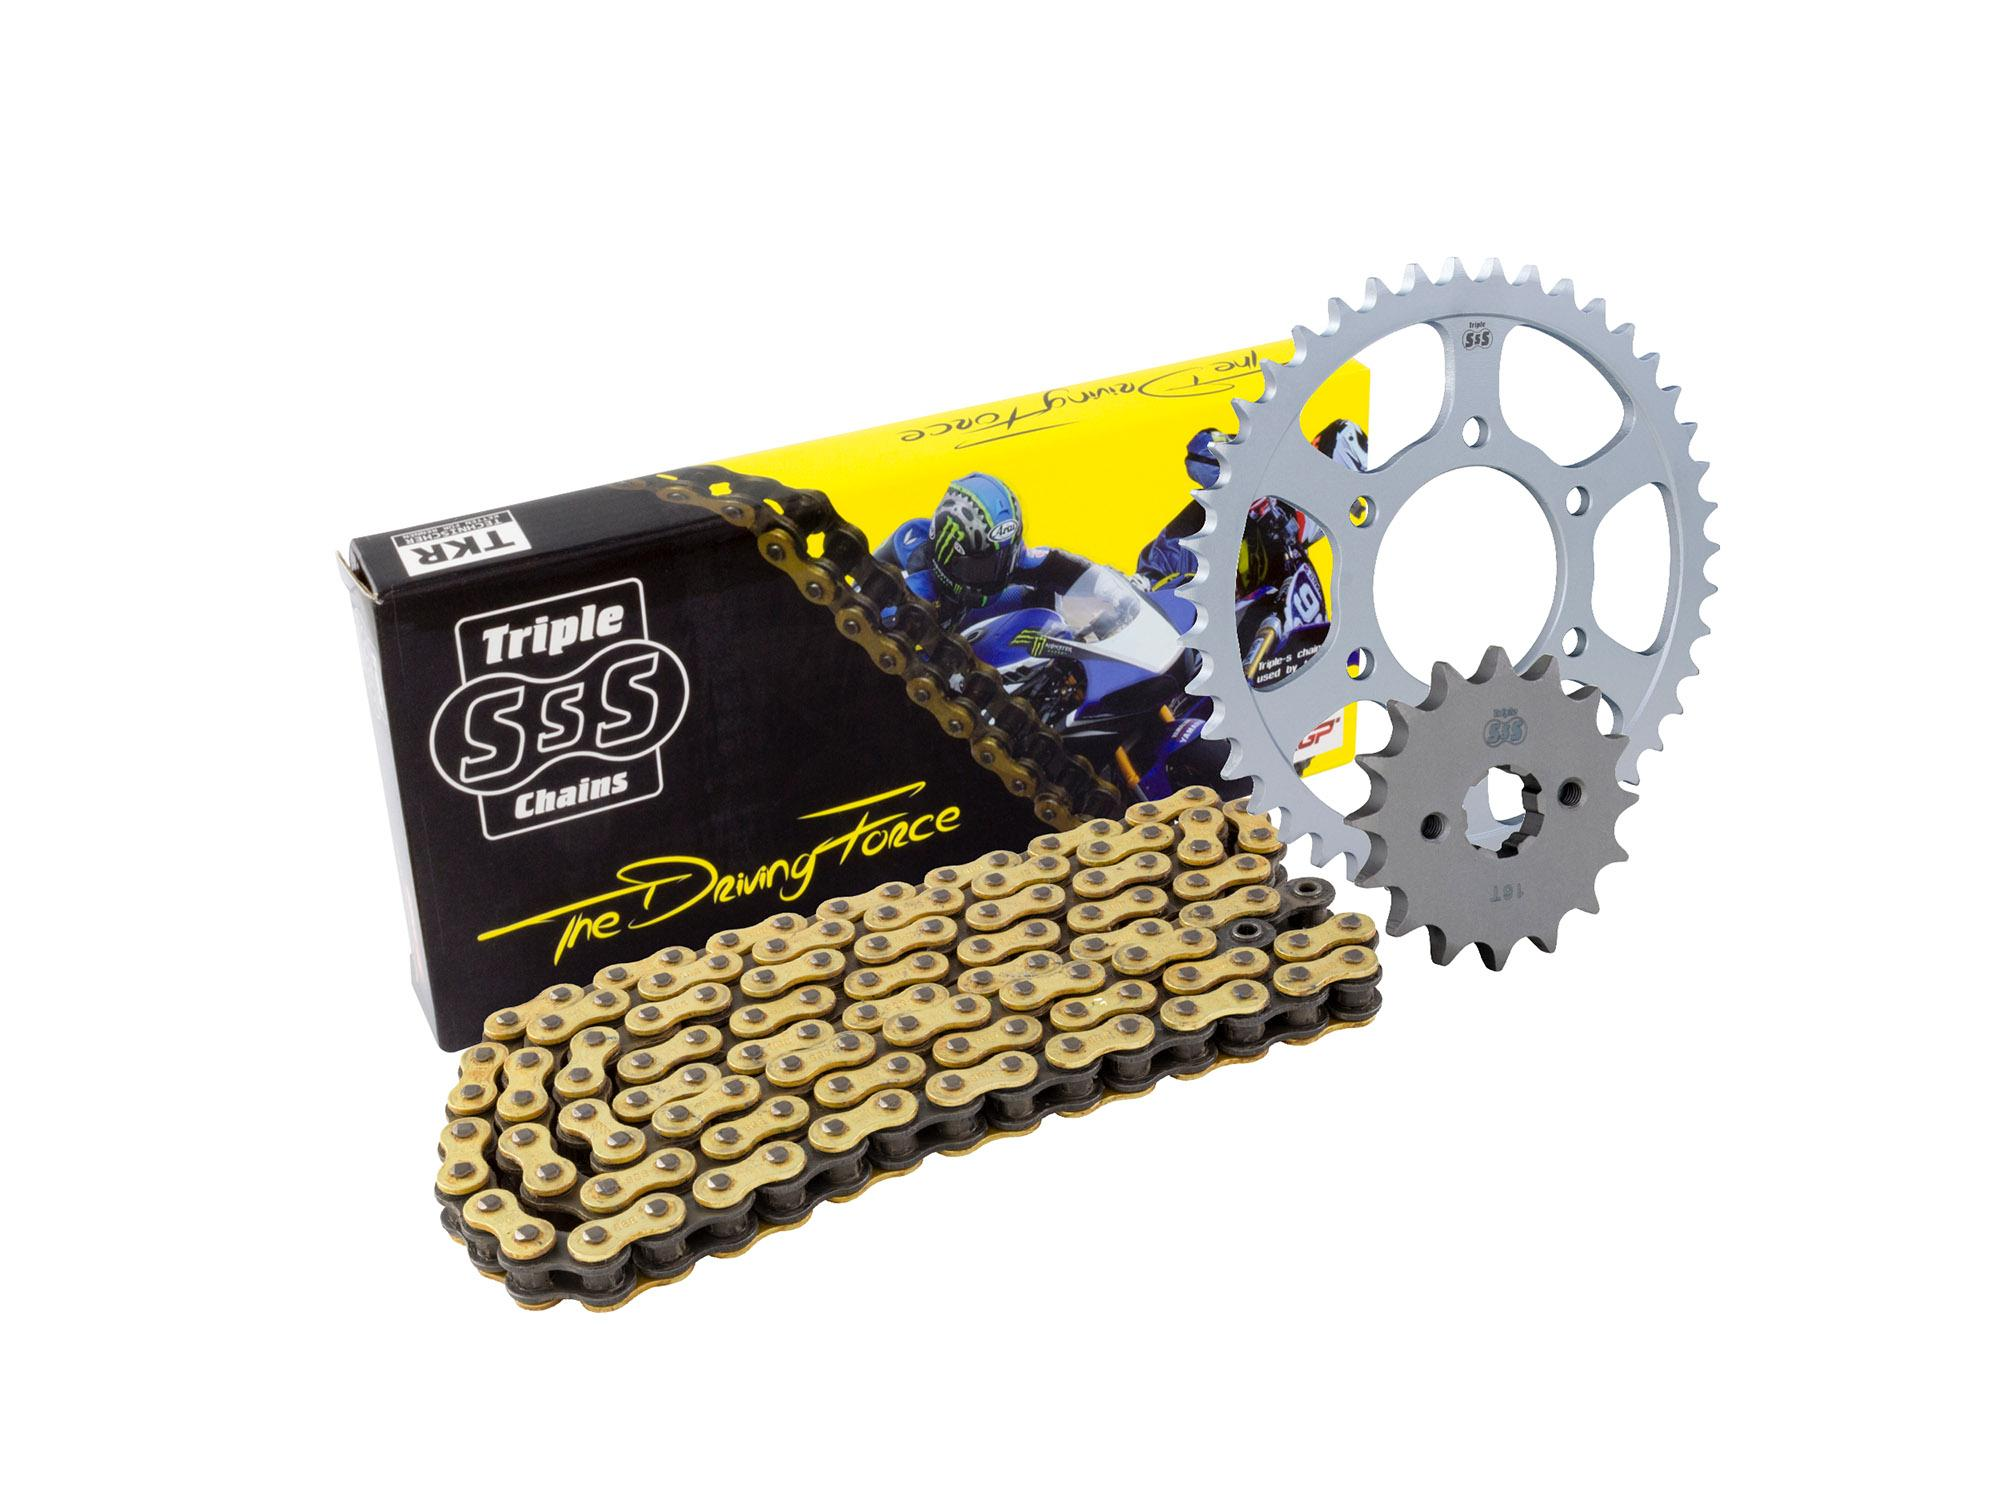 Honda NC70 S/X 16> Chain & Sprocket Kit: 17T Front, 43T Rear, HD O-Ring Gold Chain 520H 112Link